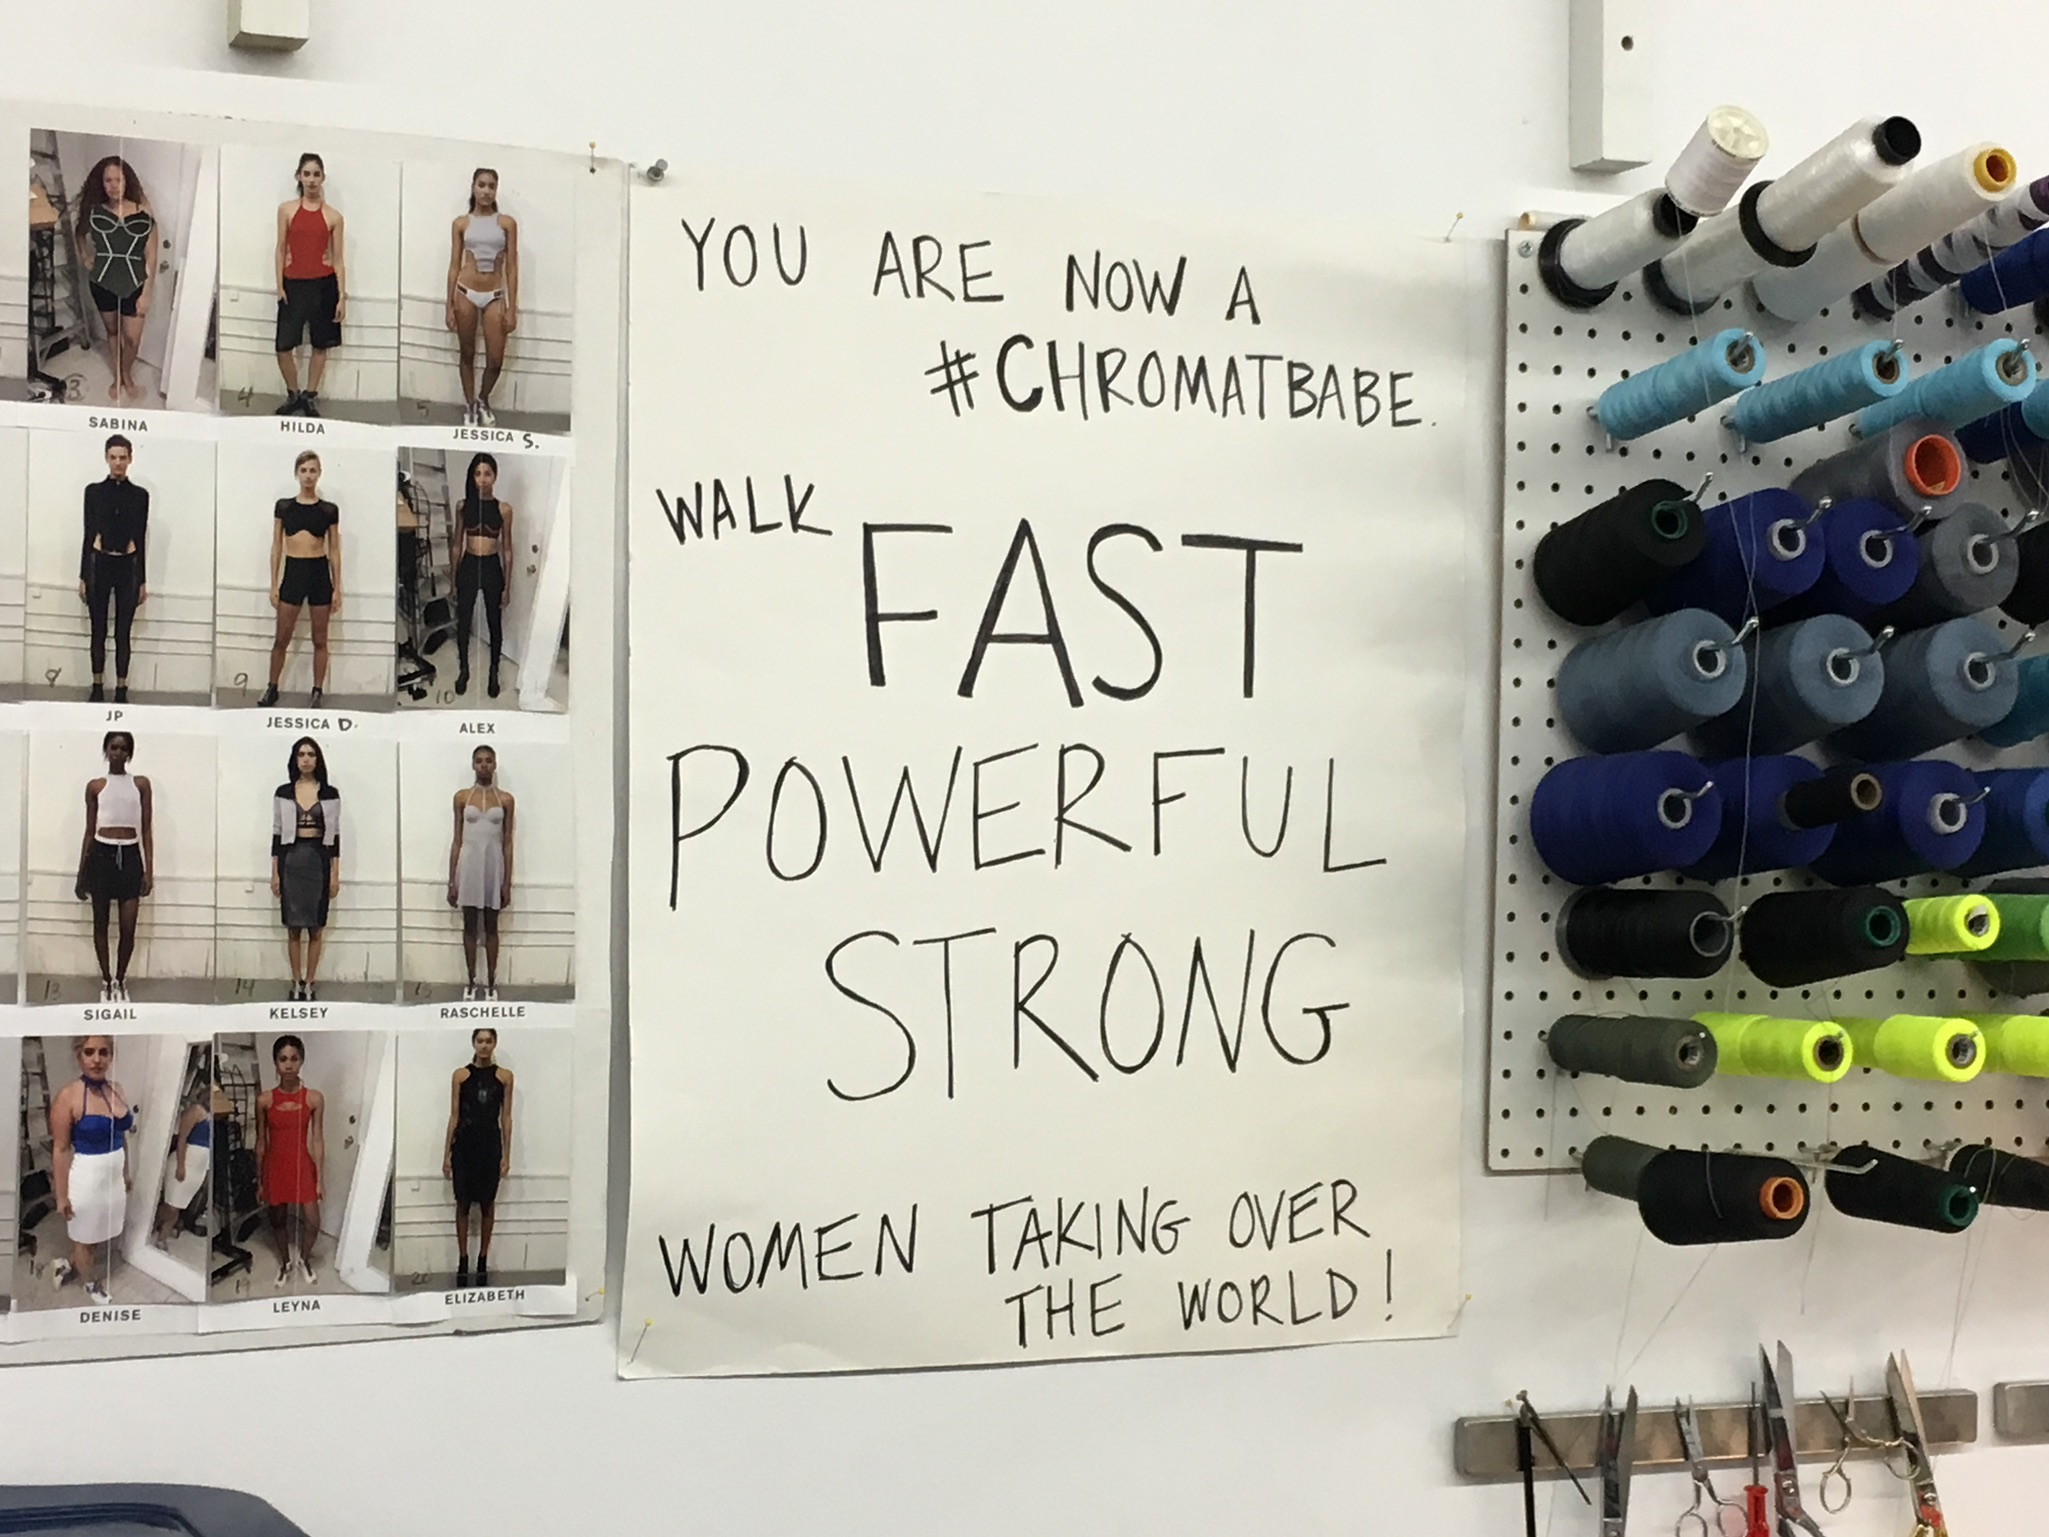 BEHIND THE SCENES: #ChromatBabes walk fast, are powerful and strong ---Women taking over the world!